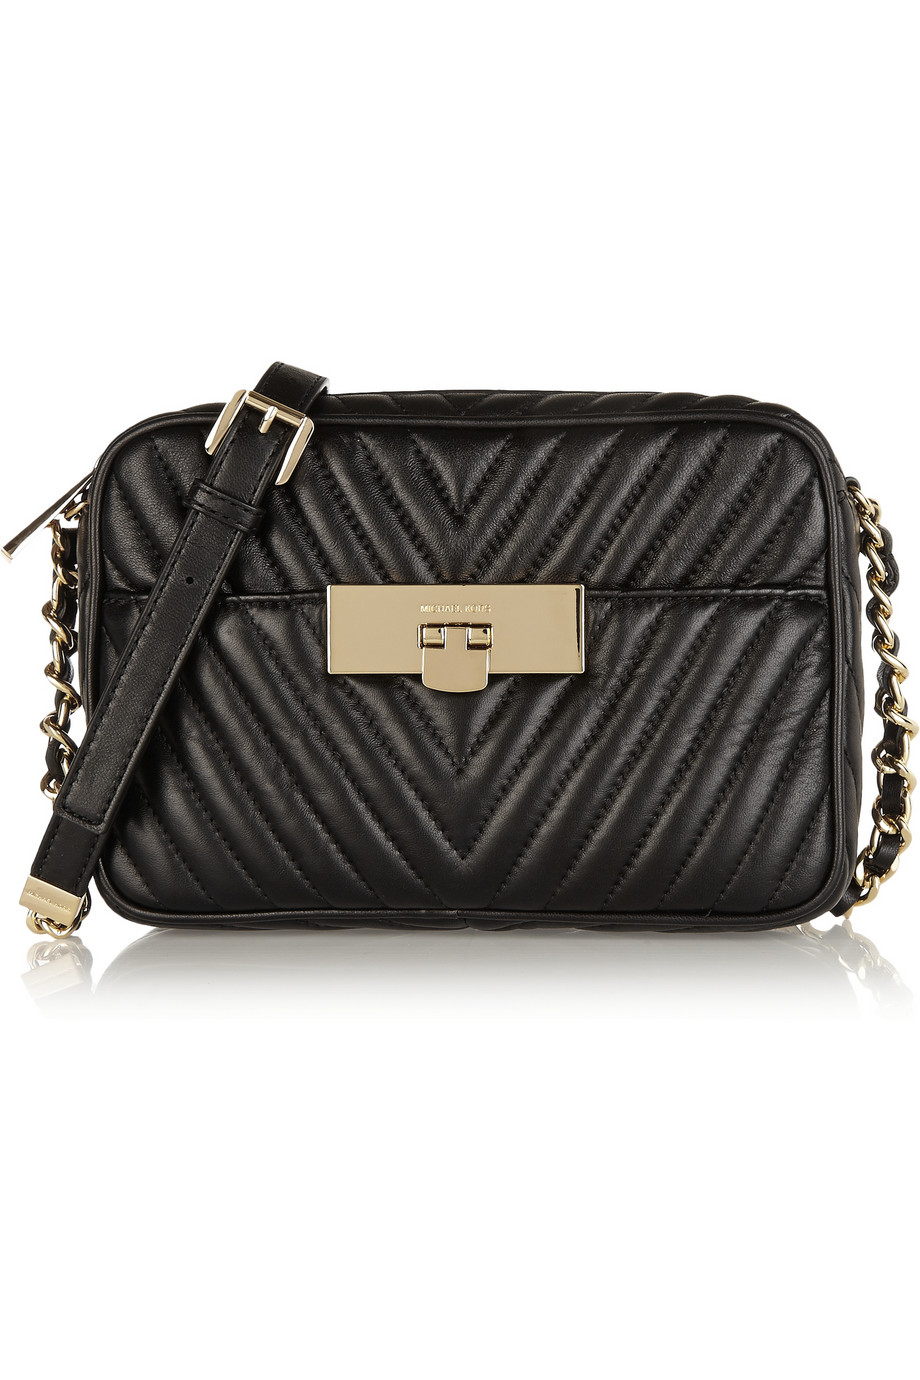 d1035f8fa4ca Lyst - Michael Kors Susannah Quilted Leather Shoulder Bag in Black